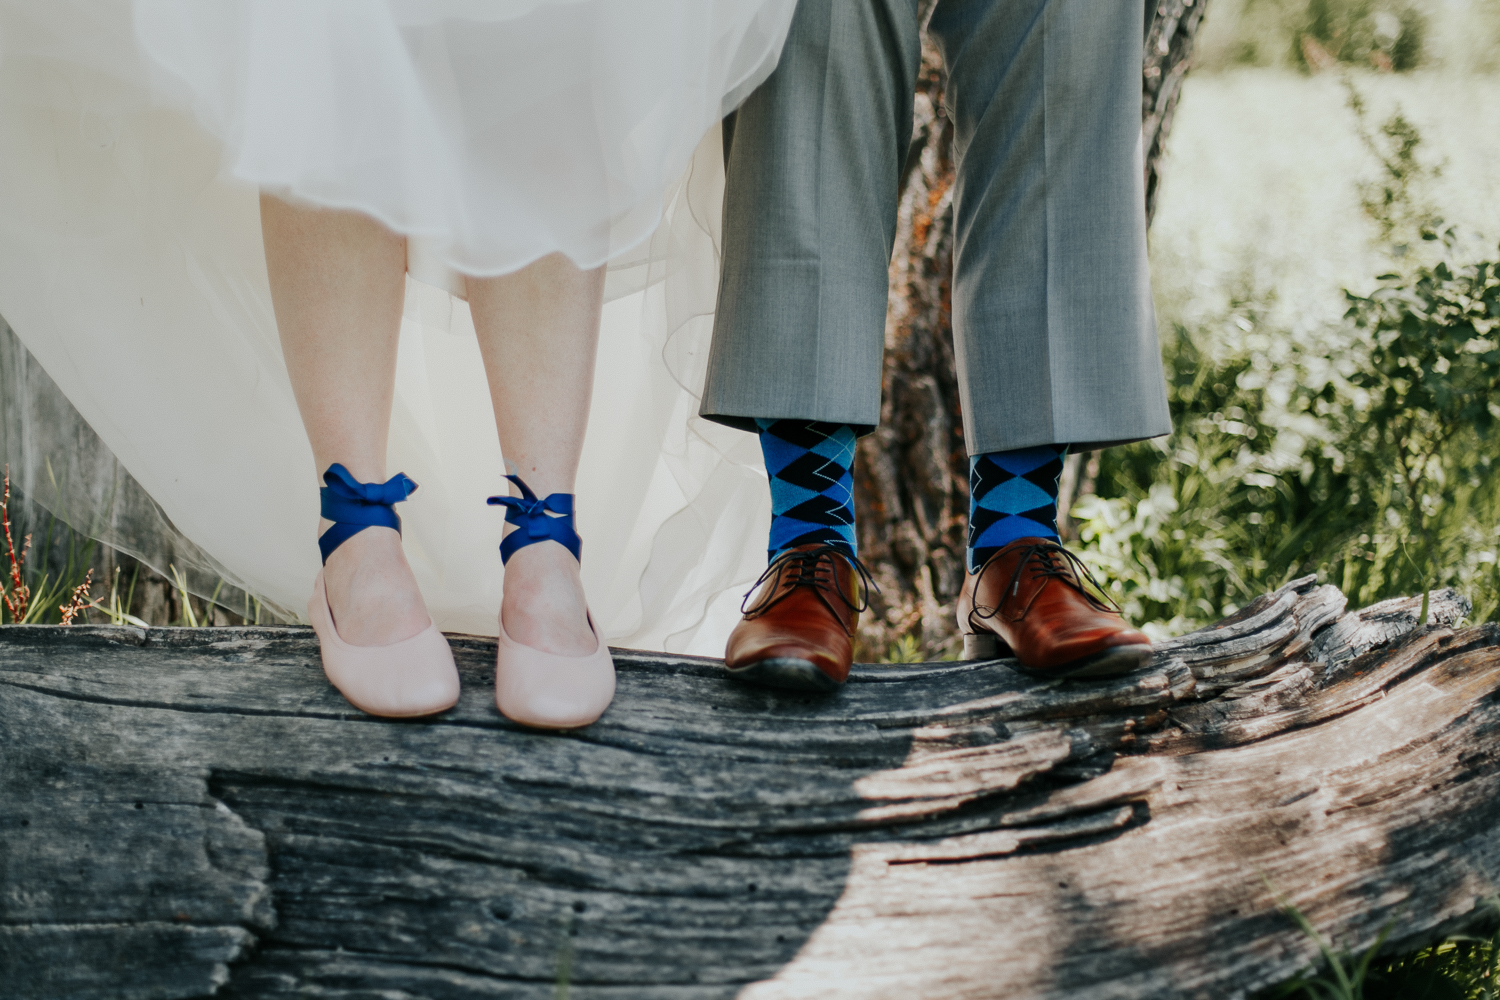 lethbridge-wedding-photographer-love-and-be-loved-photography-dan-tynnea-picture-image-photo-68.jpg